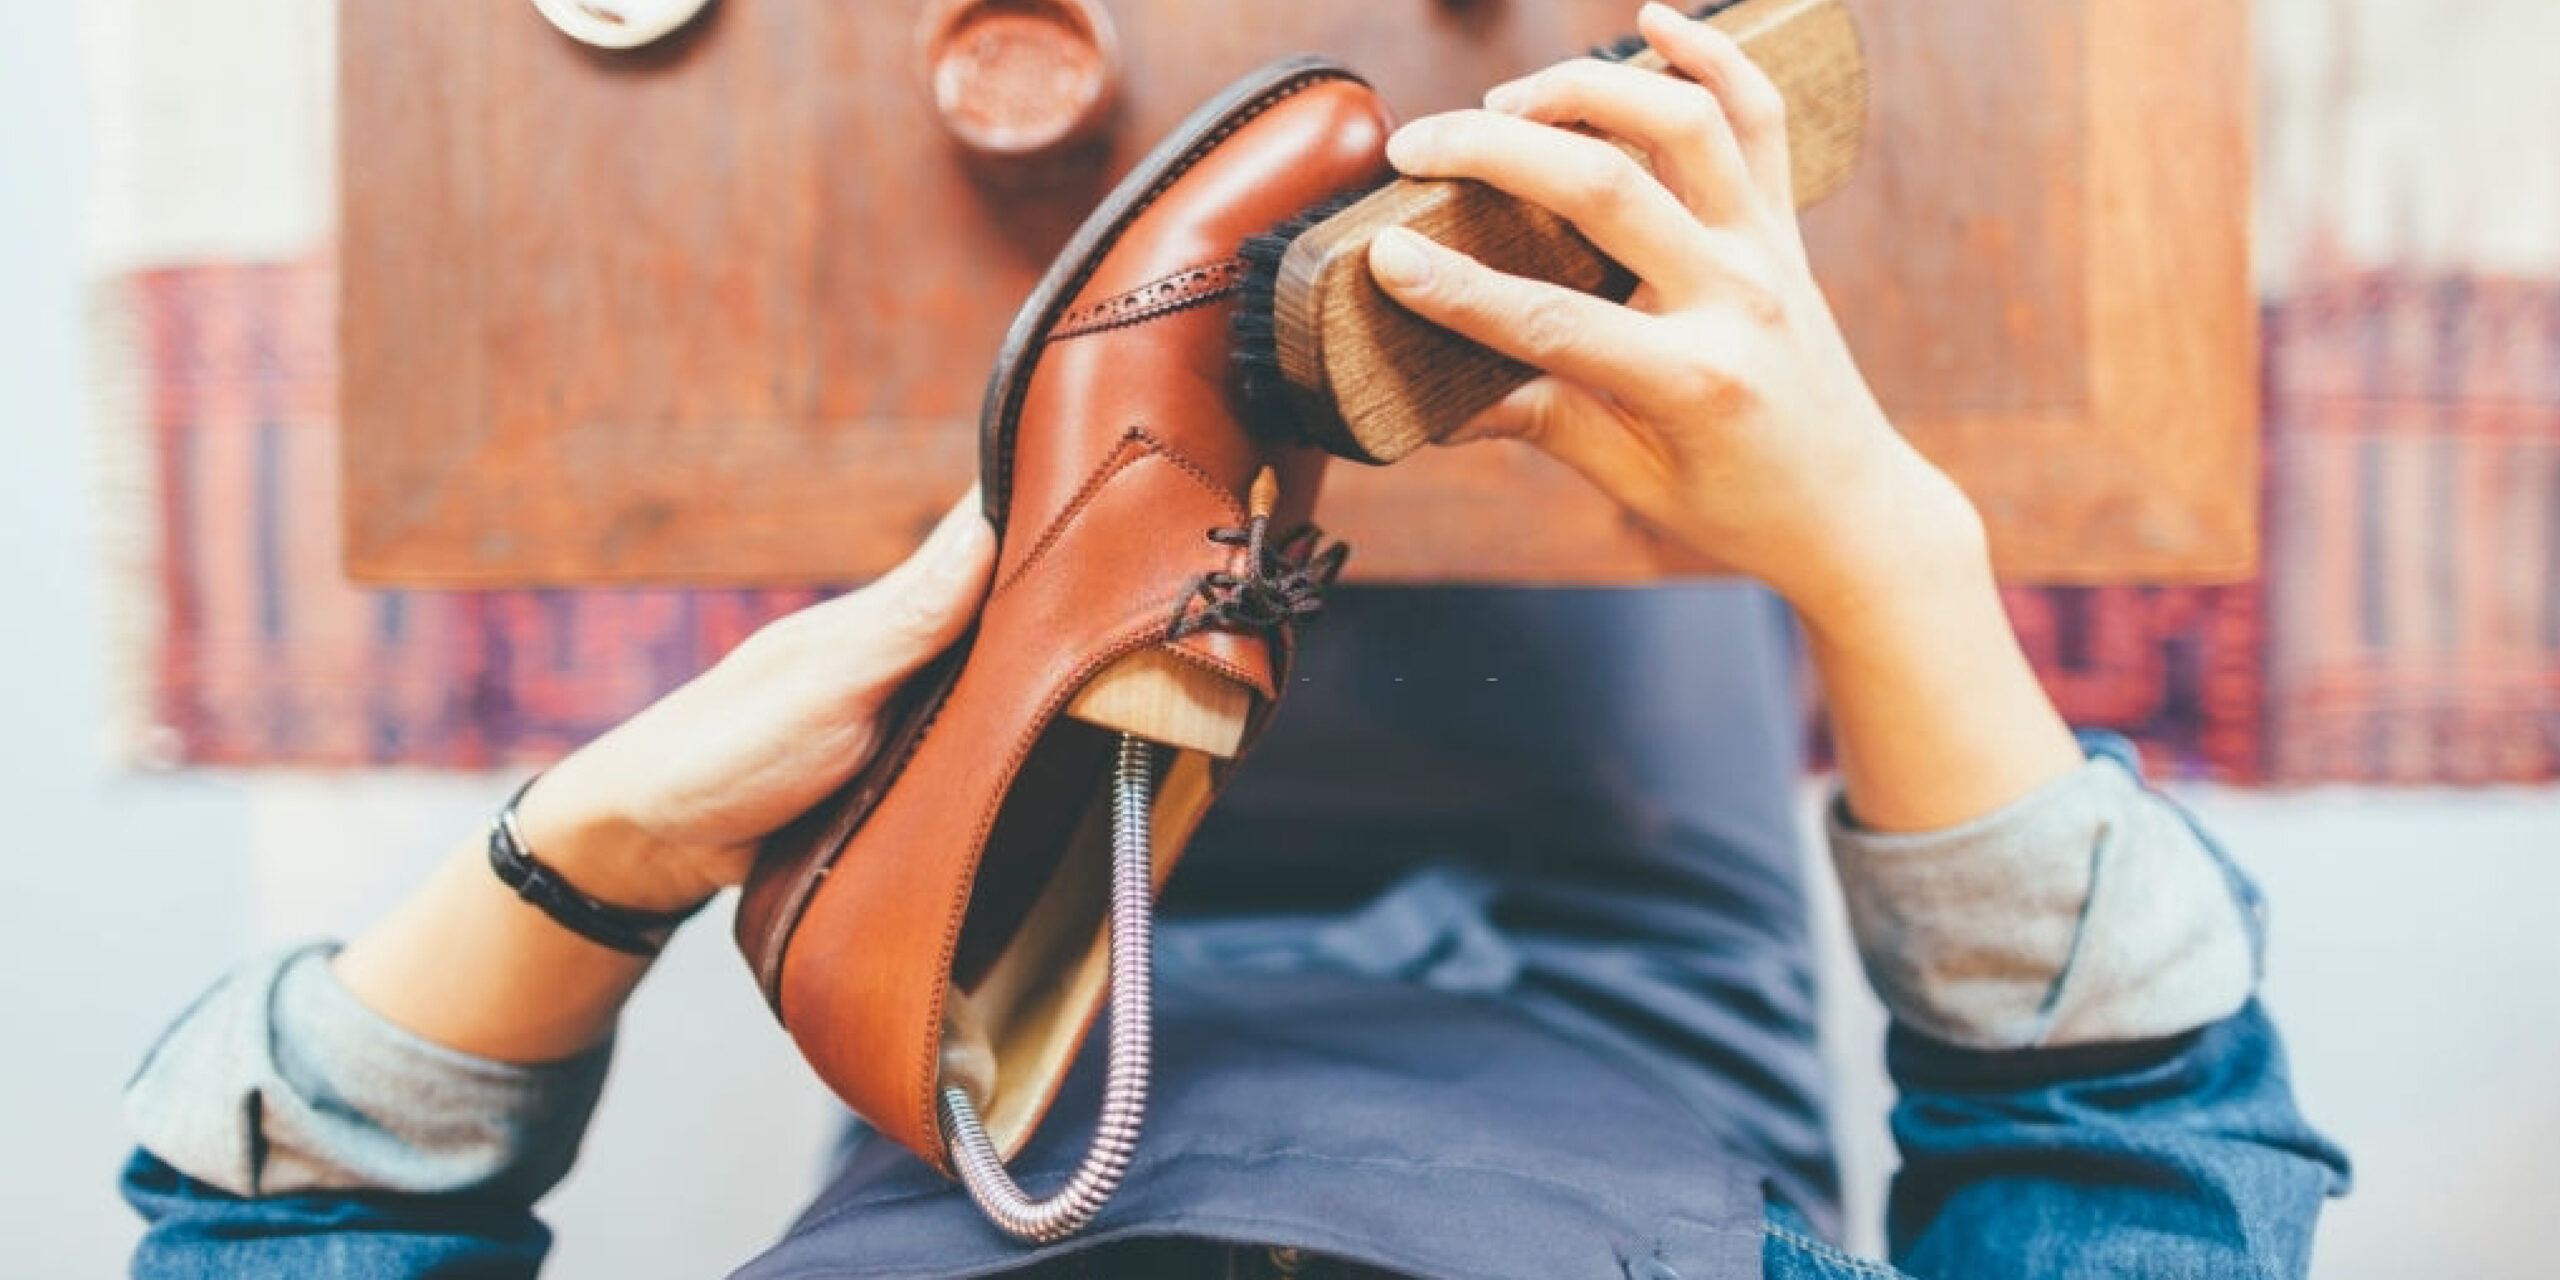 How to Polish Shoes to a Mirror Shine